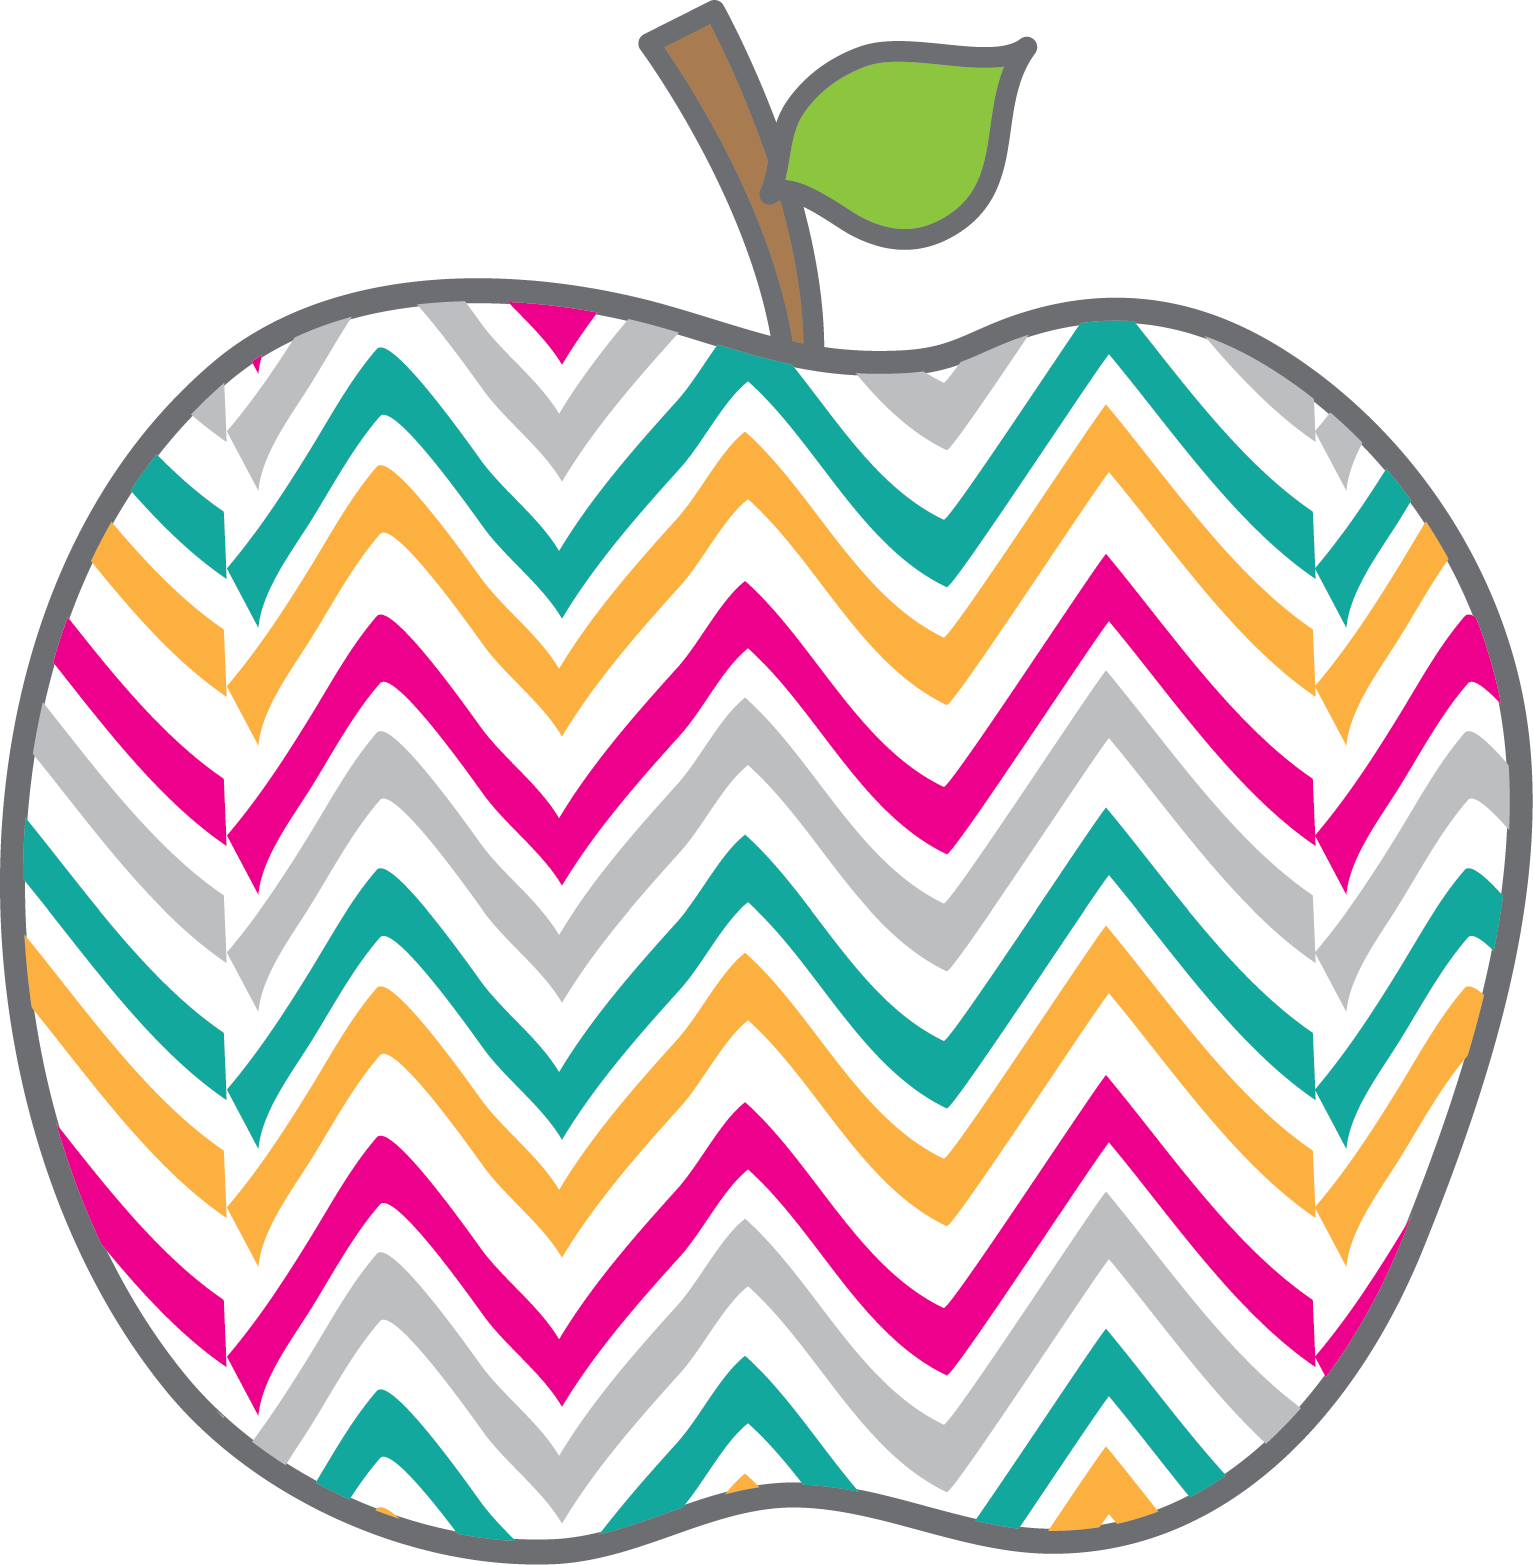 Clipart sunshine apple clipart royalty free library ✿*UY..QUE TE COMO*✿* | Dibujos bonitos | Pinterest | Clip art, Pre ... clipart royalty free library